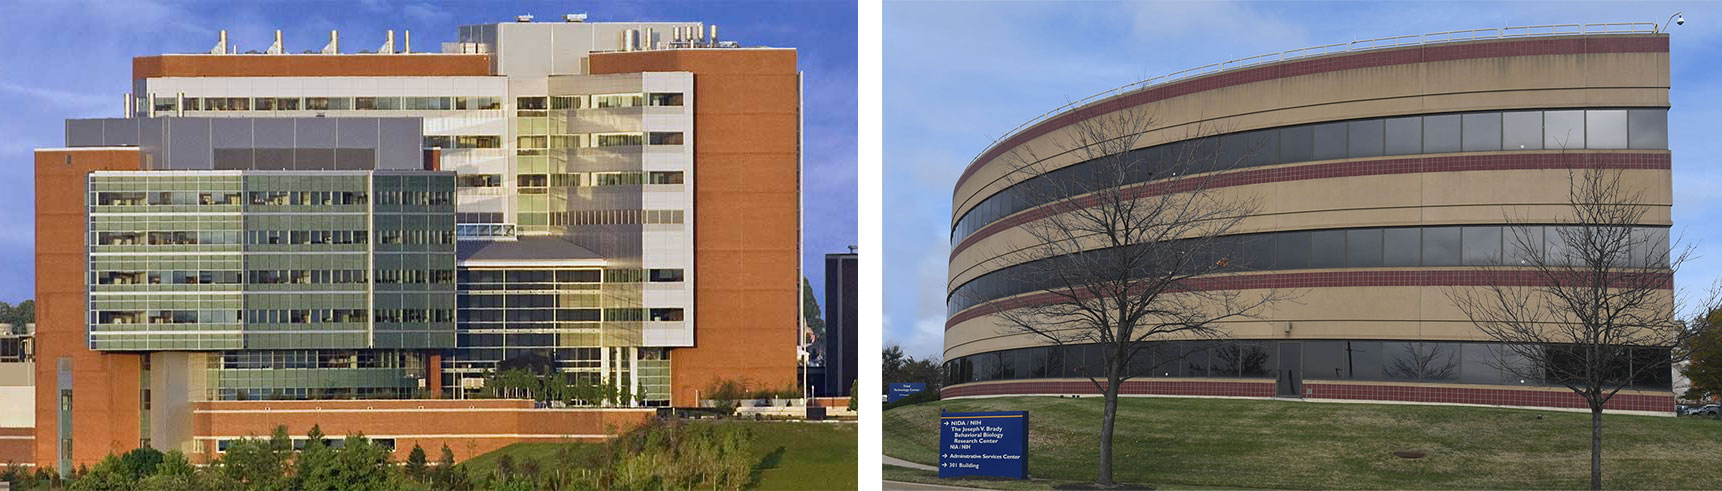 The NIDA IRP is located in the BiomedThe NIDA IRP is located in the Biomedical Research Center (left) and the Triad Technology Center (right).ical Research Center and the Triad Technology Center